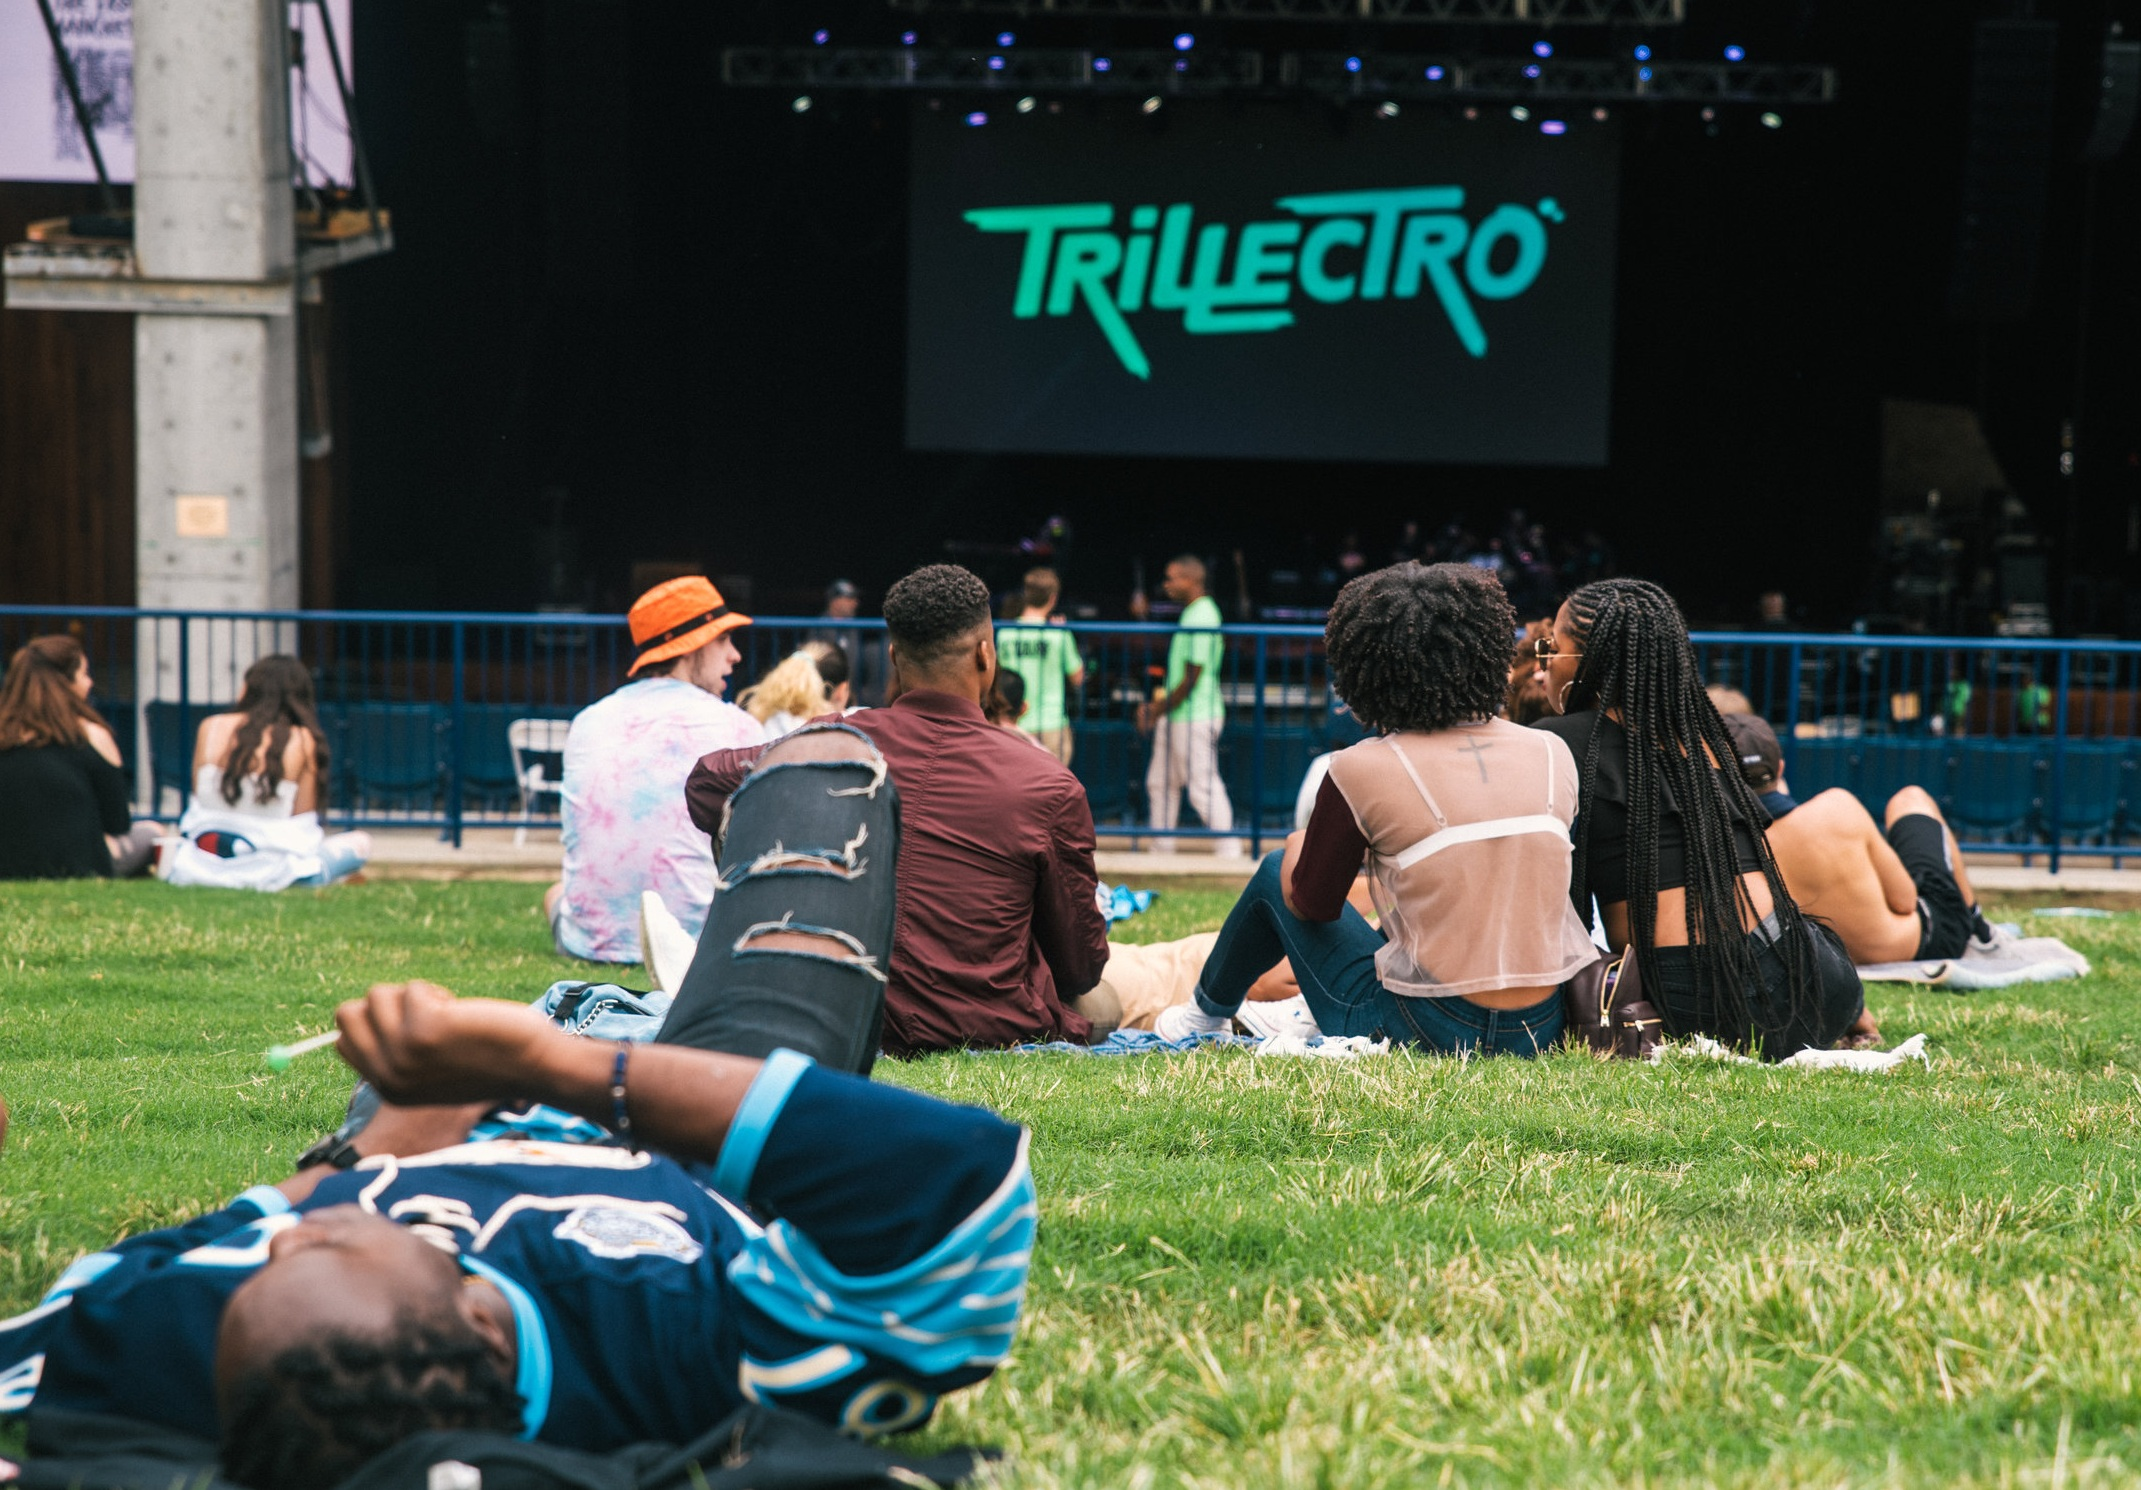 Trillectro @ Merriweather Post Pavillion | 09.22.18 →